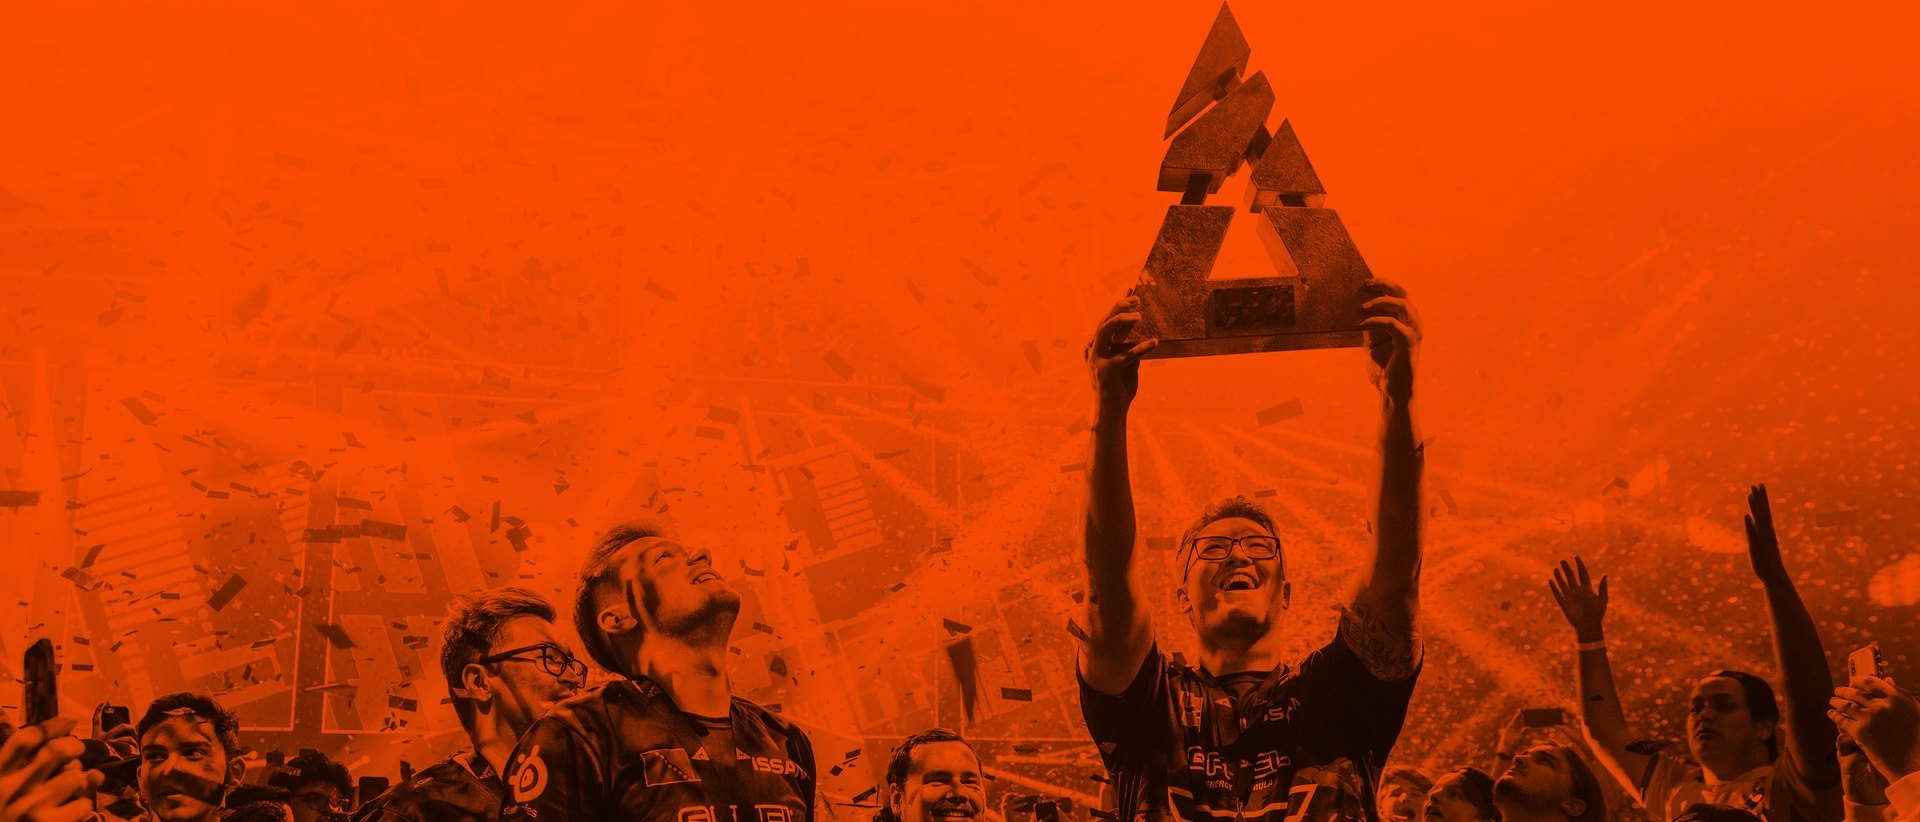 An esports player celebrates a win with a trophy above their head and confetti falling.